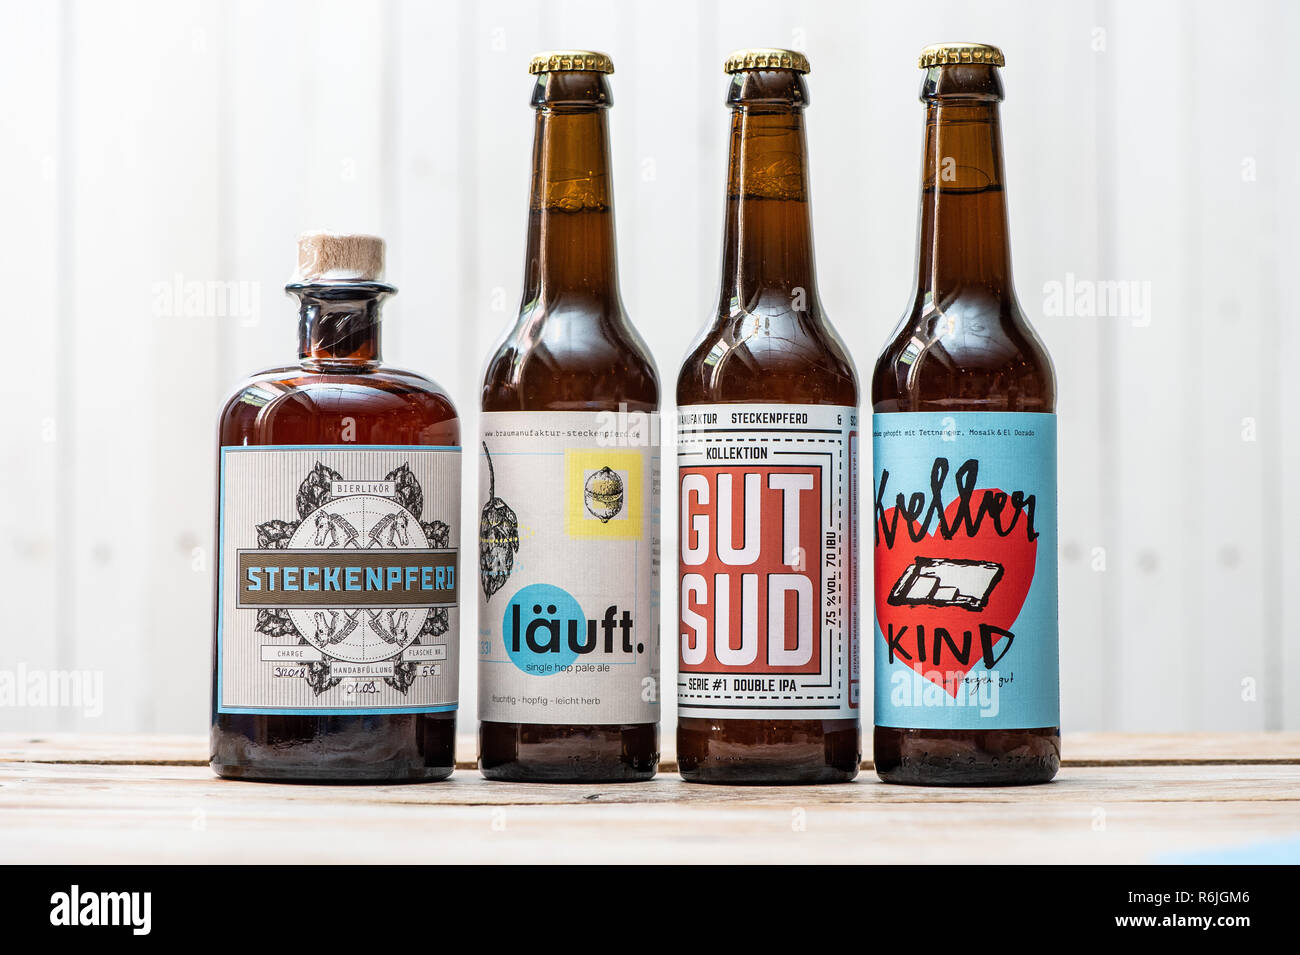 """Kassel, Germany. 22nd Nov, 2018. Craft Beer bottles with the imprints """"Steckenpferd"""", """"läuft"""", """"gut sud"""" and """"Kellerkind"""" are placed on the counter in the Braumanufaktur Steckenpferd. (to dpa """"Successful in the niche - Craft beer brewers assert themselves on the market"""" of 06.12.2018) Credit: Swen Pförtner/dpa/Alamy Live News Stock Photo"""